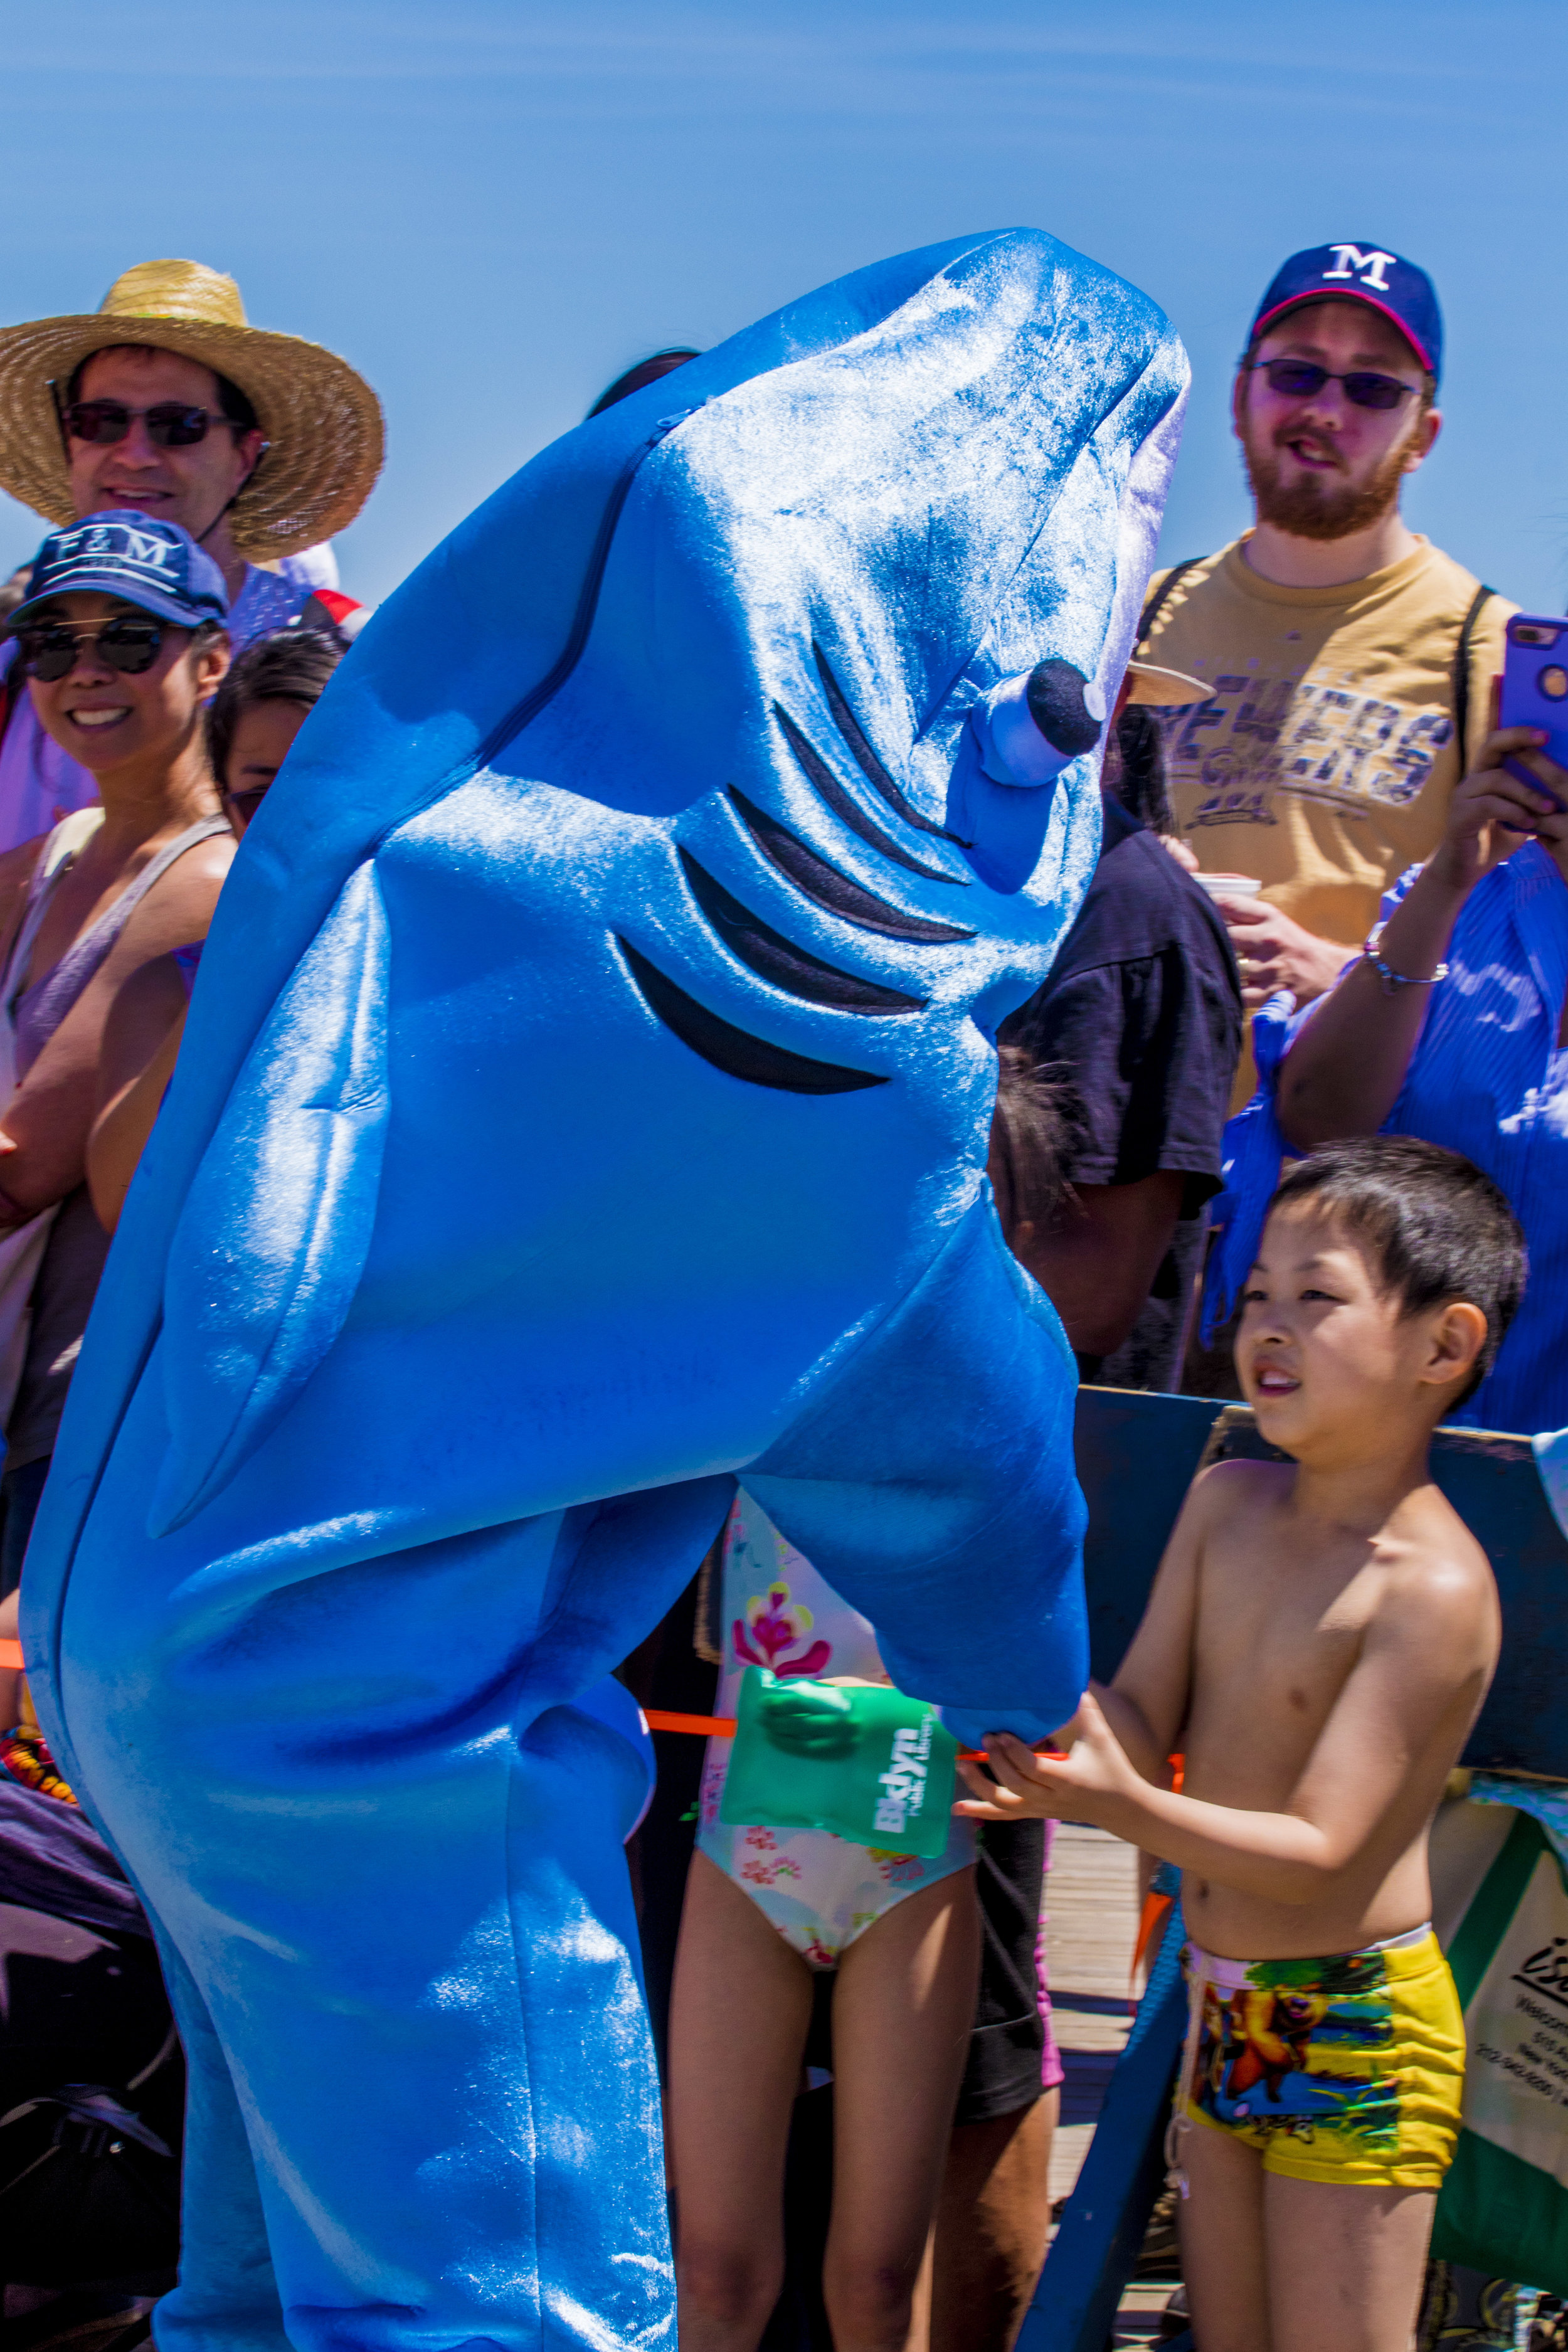 MermaidParade2018-35.jpg